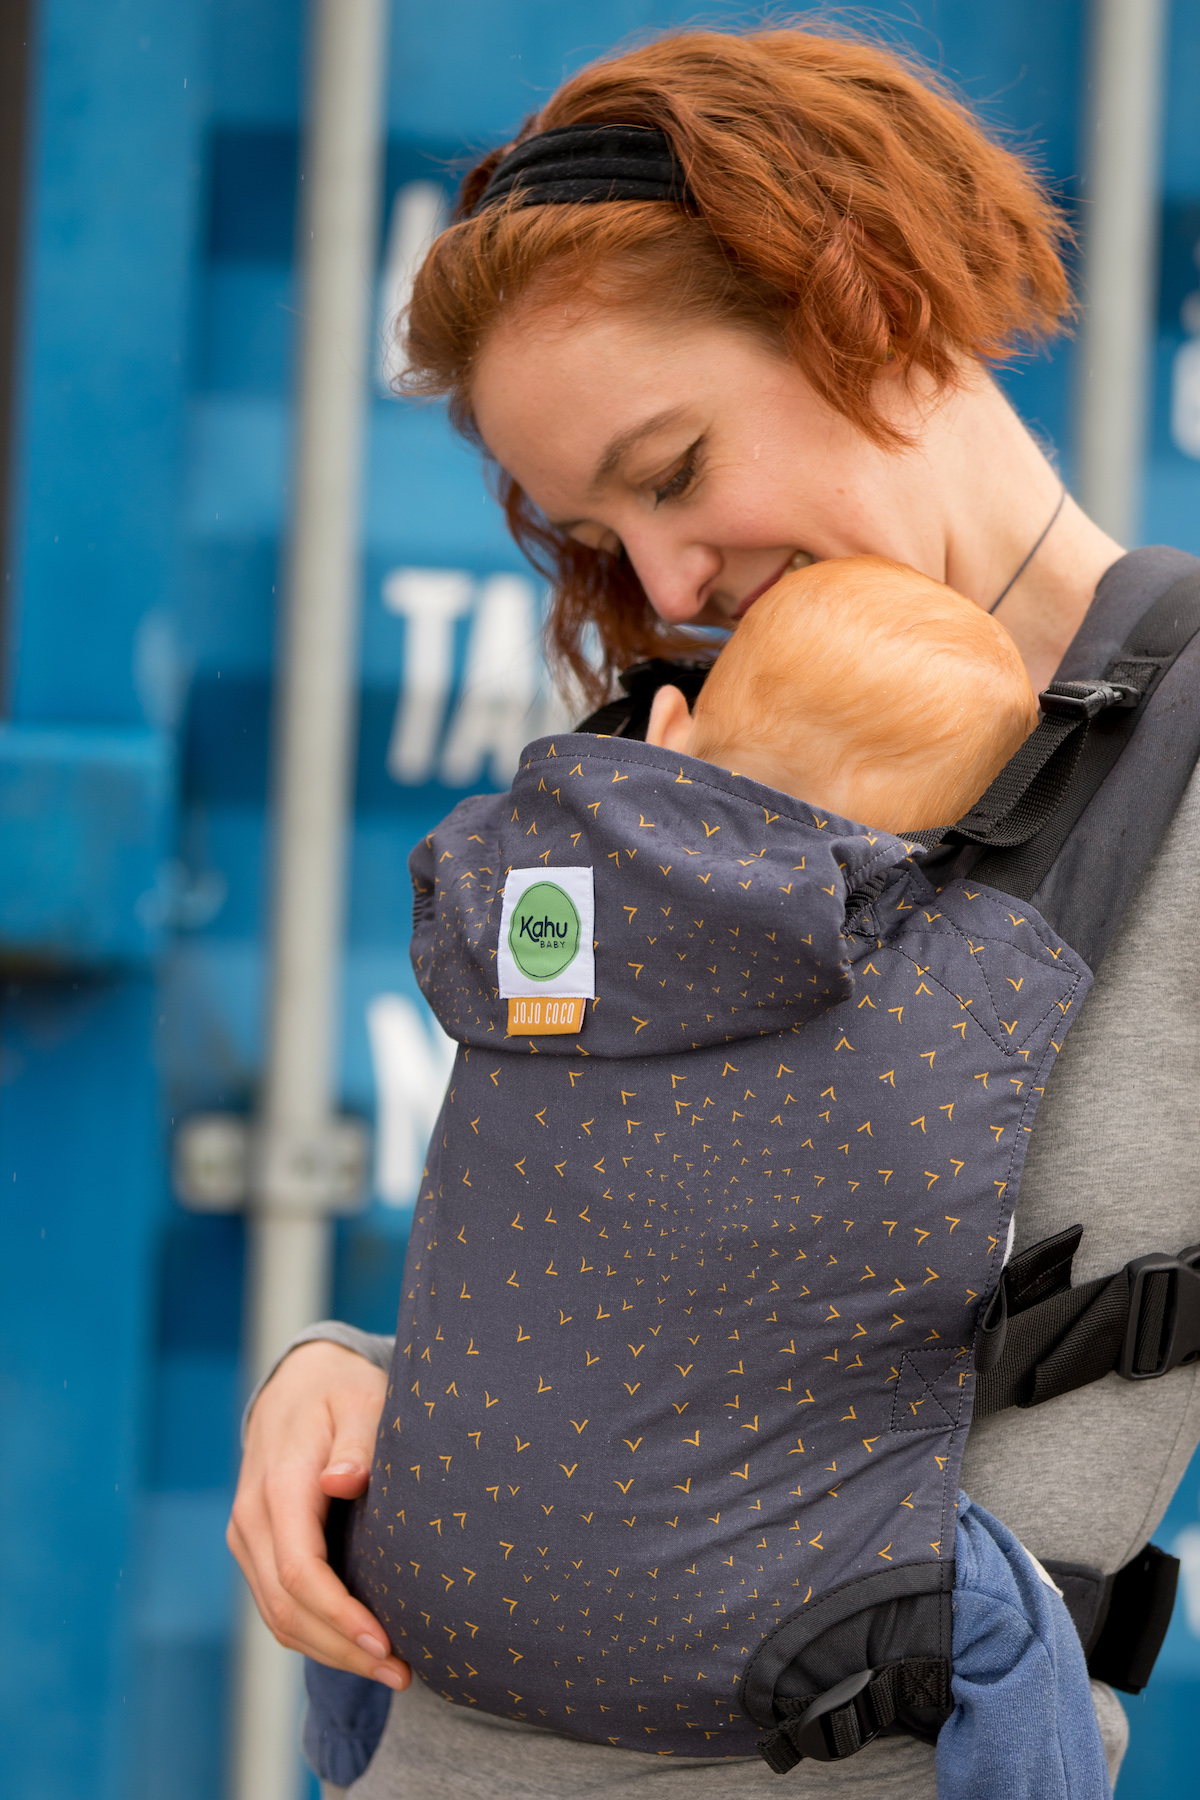 KahuBaby Carrier being used for a front carry. Featured print is Charcoal Flocking Birds.